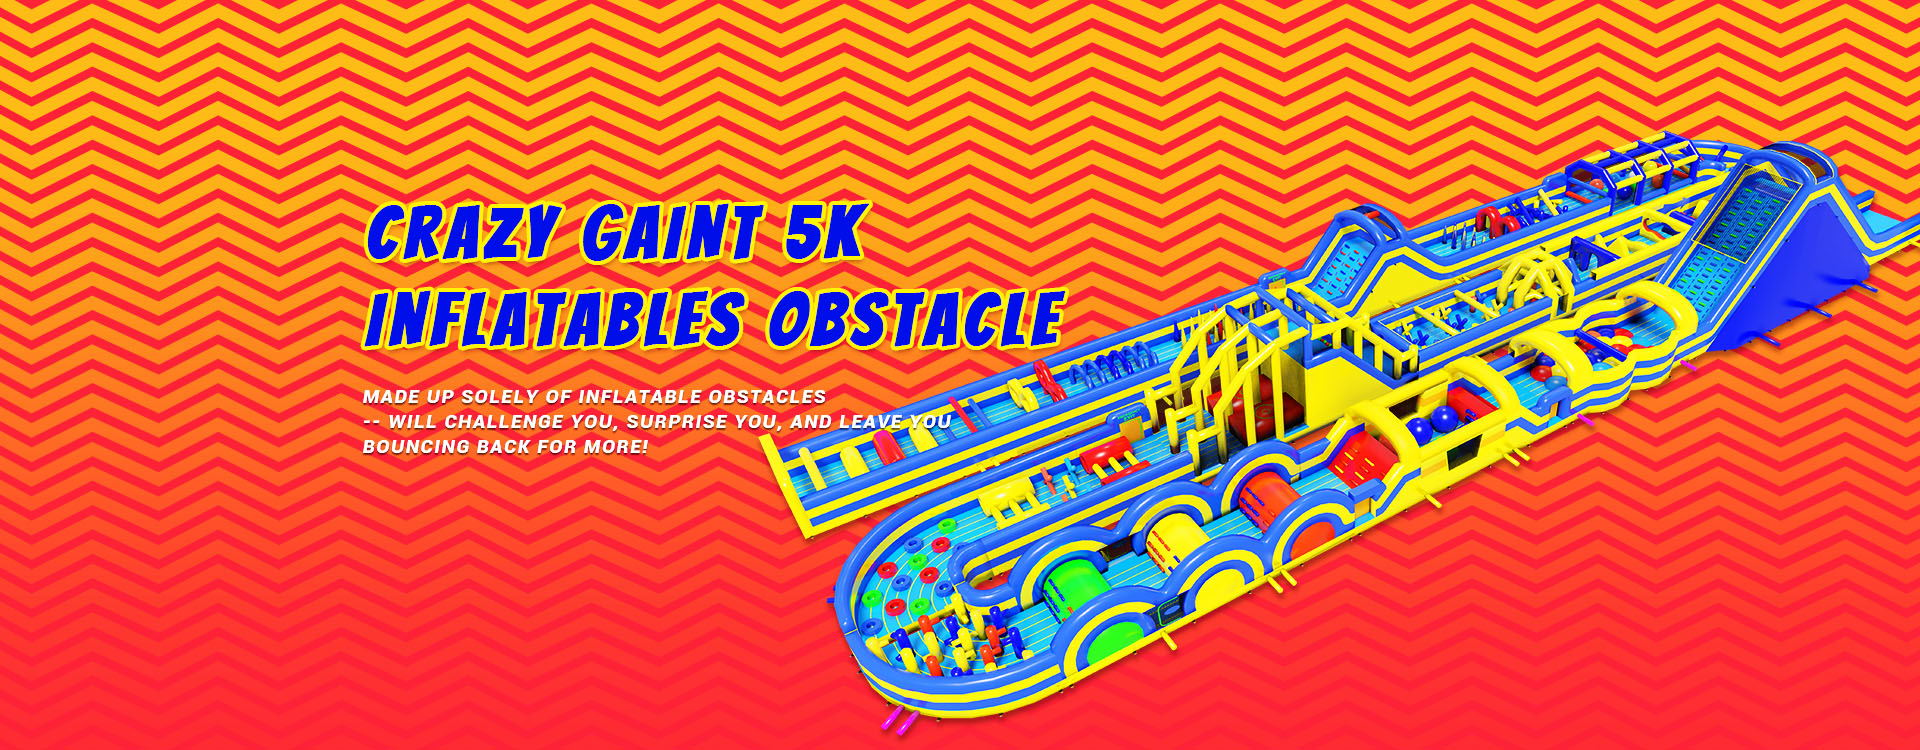 CRAZY GAINT 5K INFLATABLES OBSTACLE